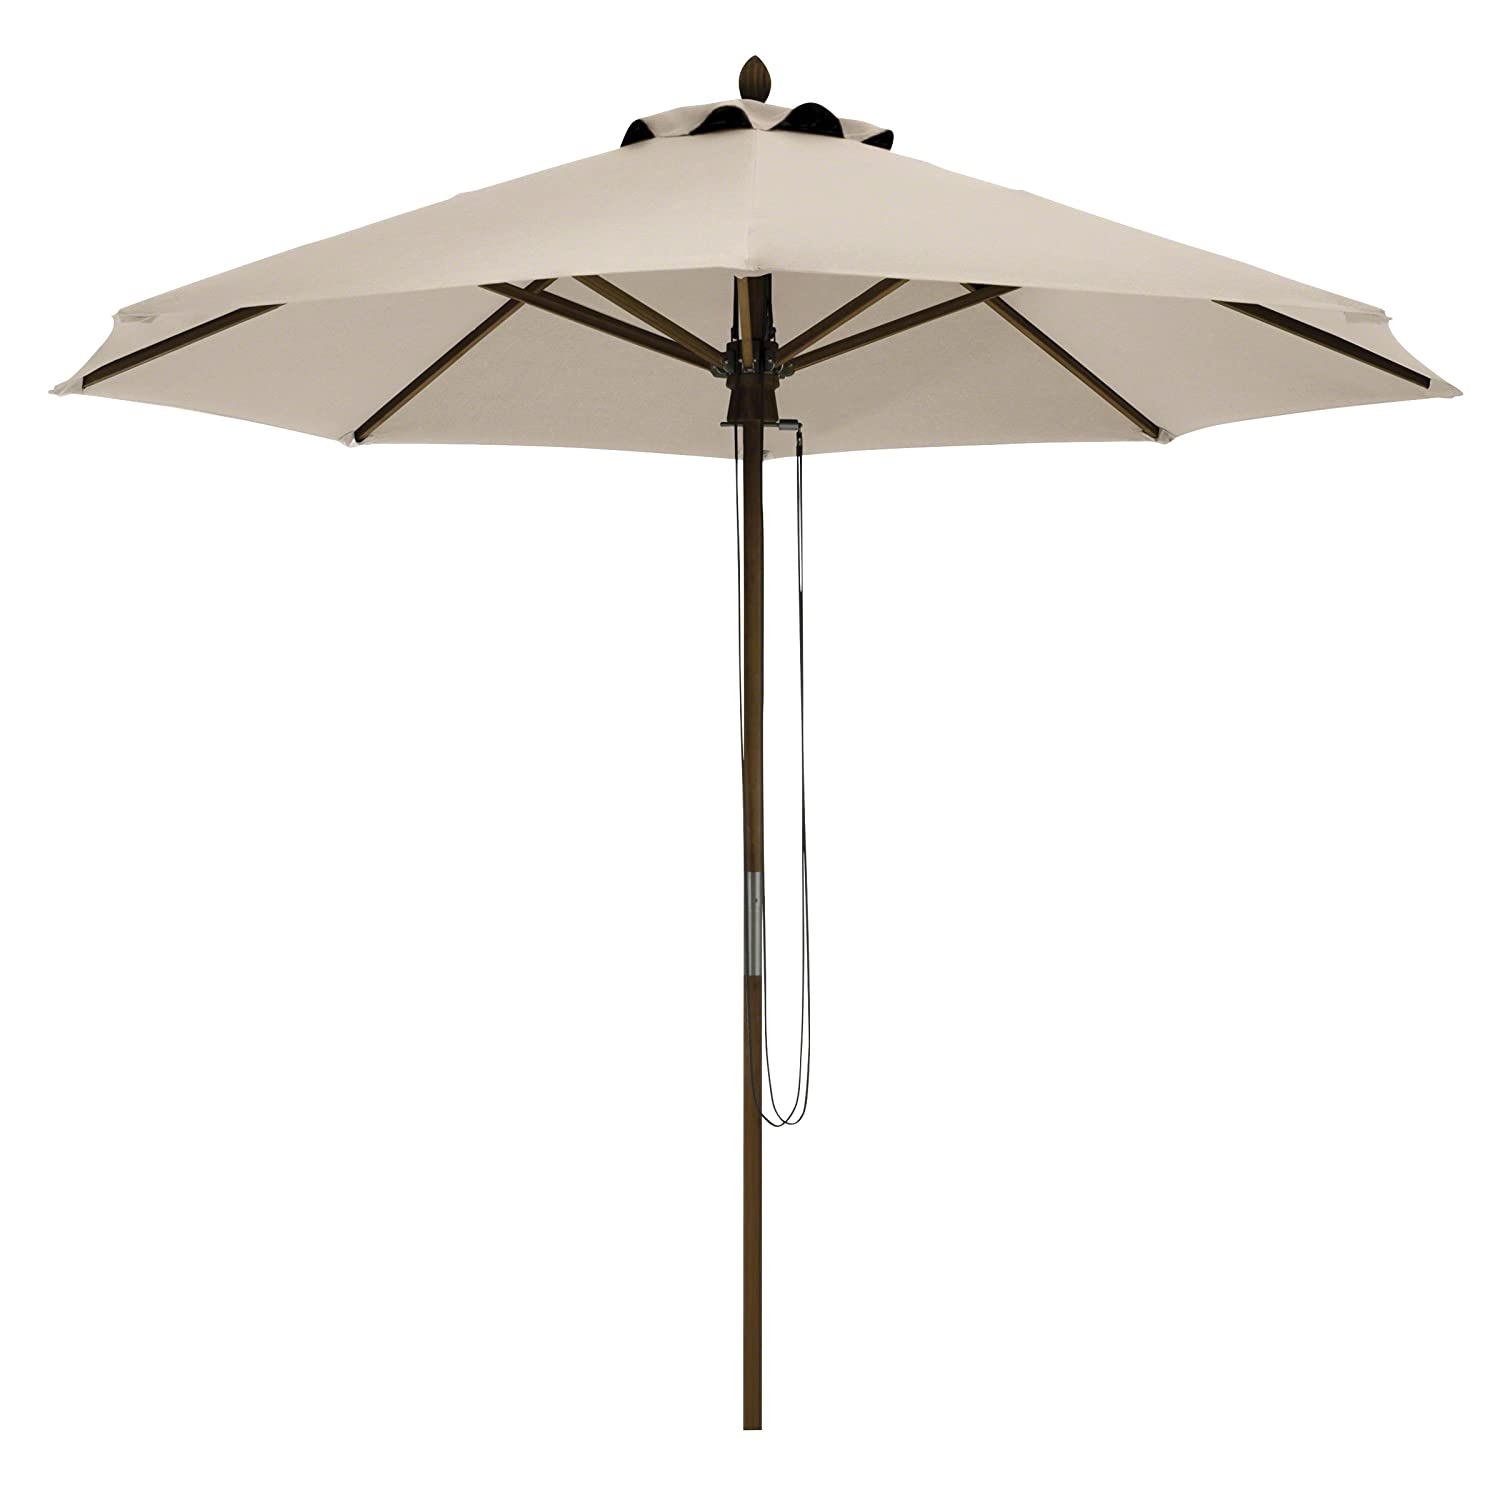 Classic Accessories Montlake FadeSafe 9-Foot Round Bamboo Patio Umbrella, Antique Beige